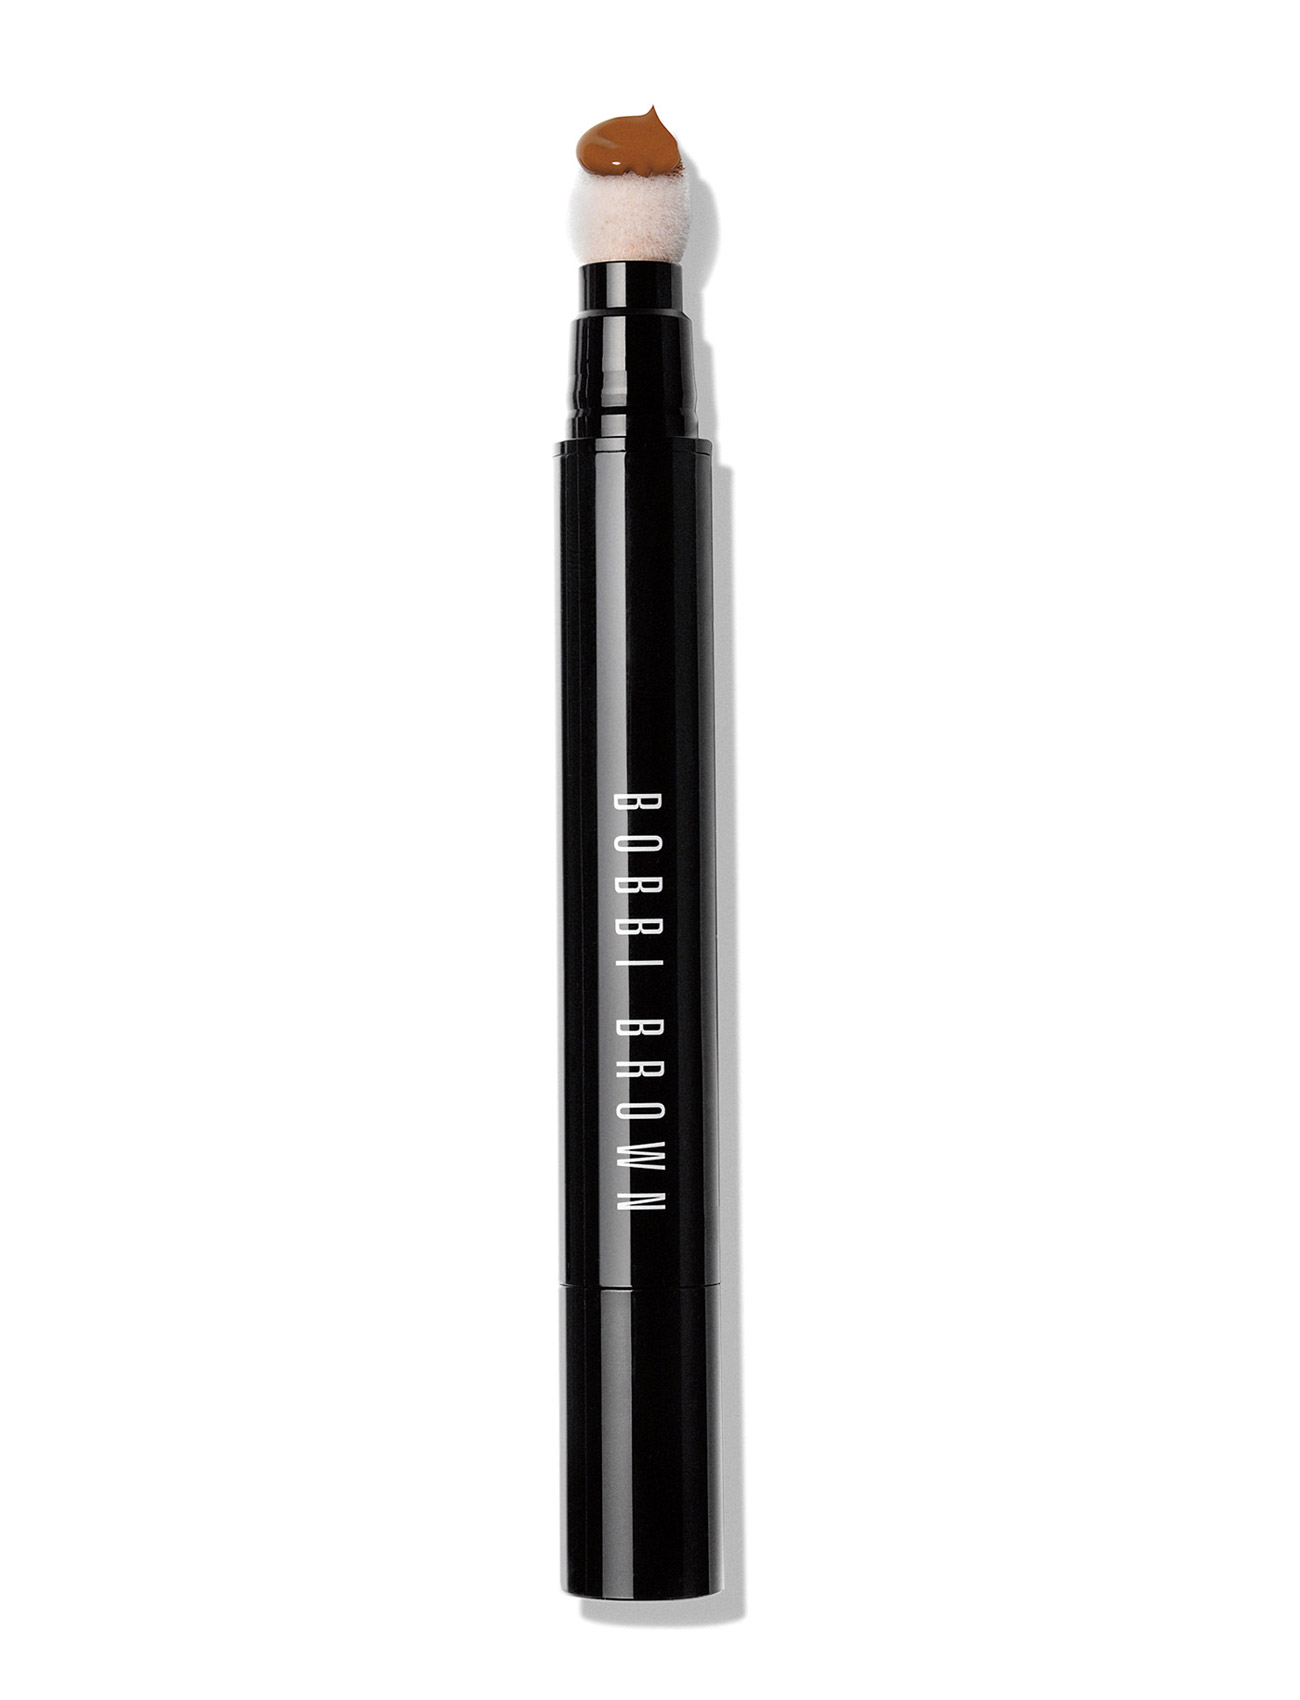 bobbi brown – Retouching wand, light på boozt.com dk